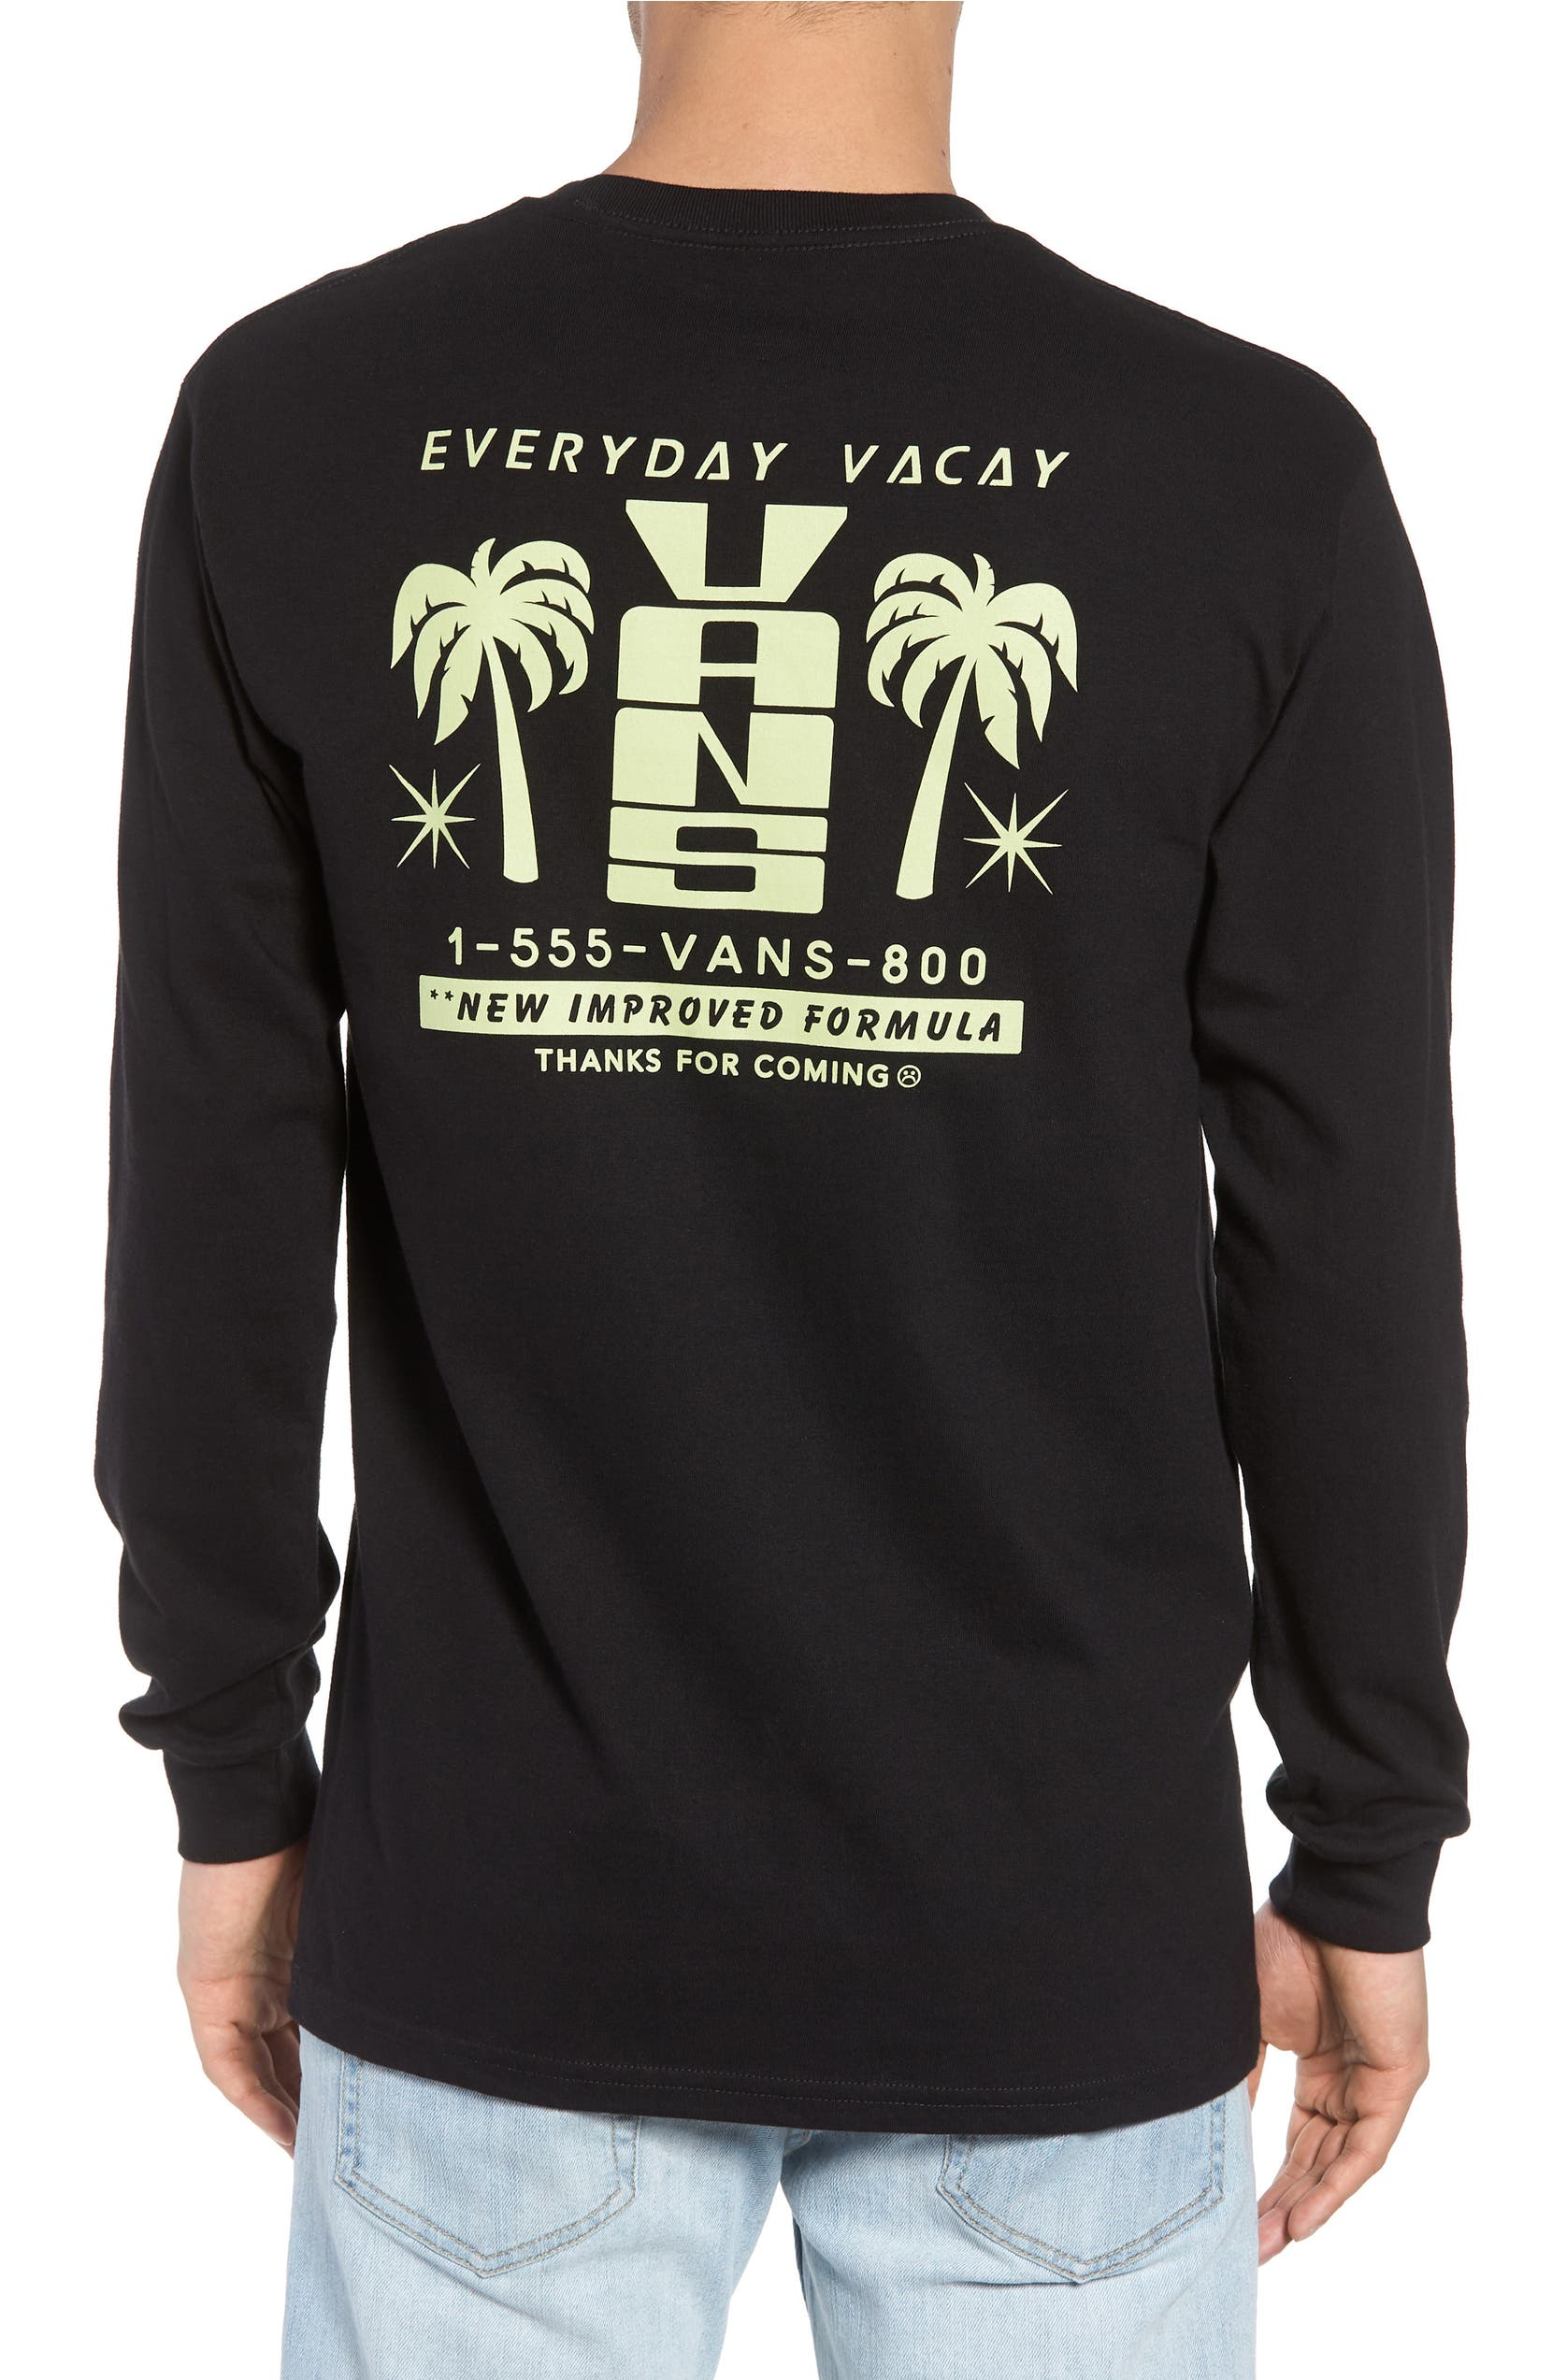 c9b19a29d Vans Everyday Vacay Graphic T-Shirt | Nordstrom